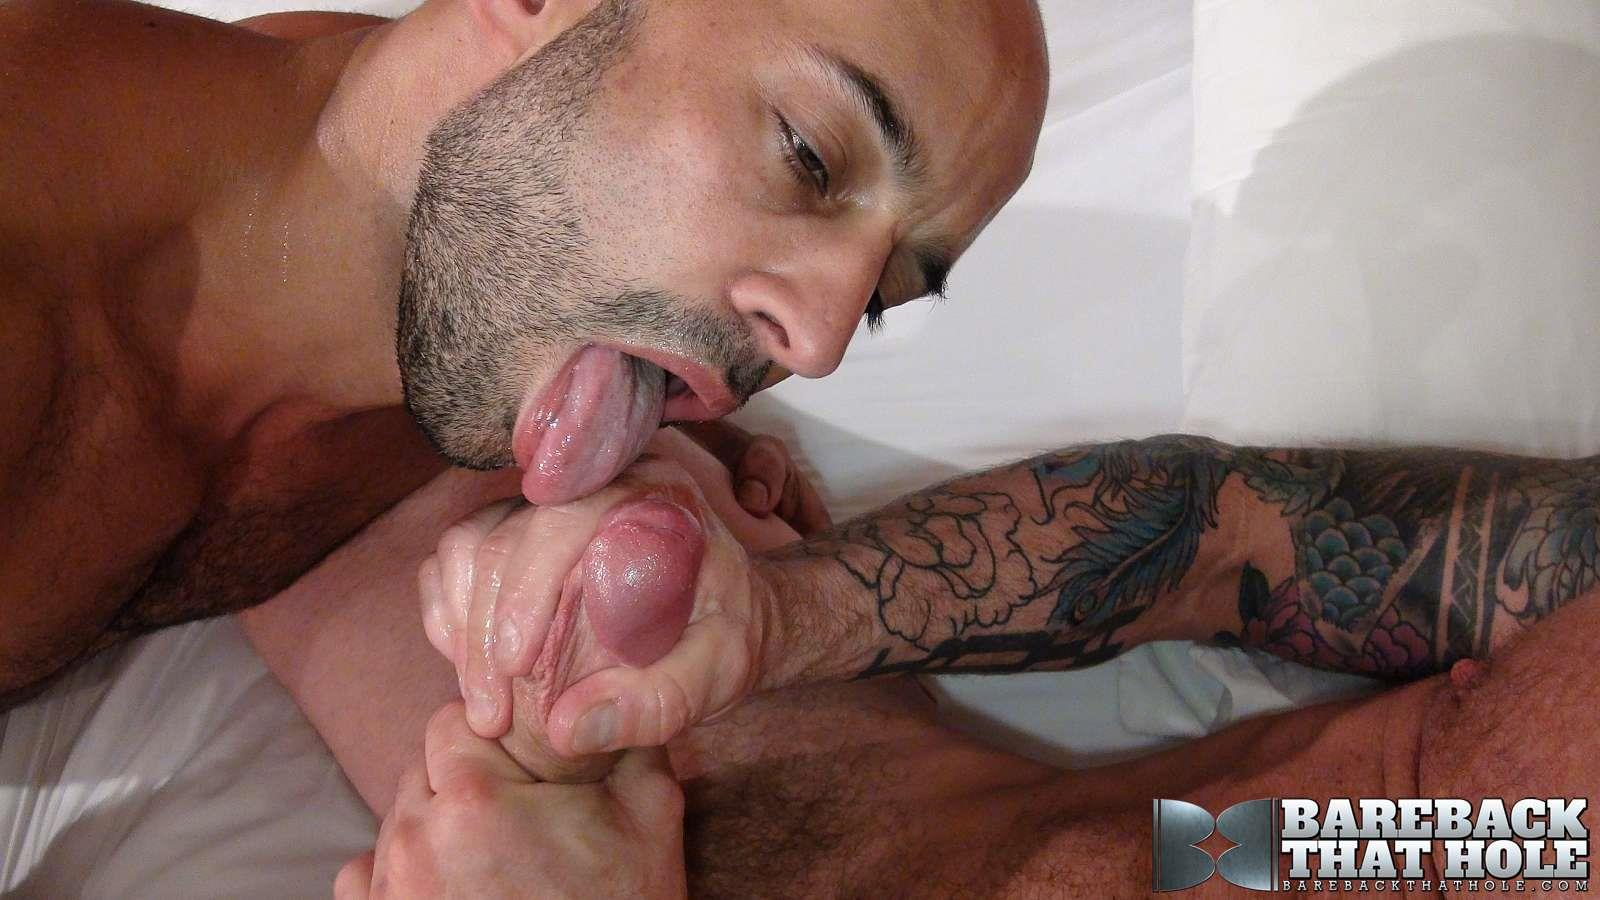 Bareback-That-Hole-Bareback-That-Hole-Rocco-Steele-and-Igor-Lukas-Huge-Cock-Barebacking-A-Tight-Ass-Amateur-Gay-Porn-15 Rocco Steele Tearing Up A Tight Ass With His Huge Cock